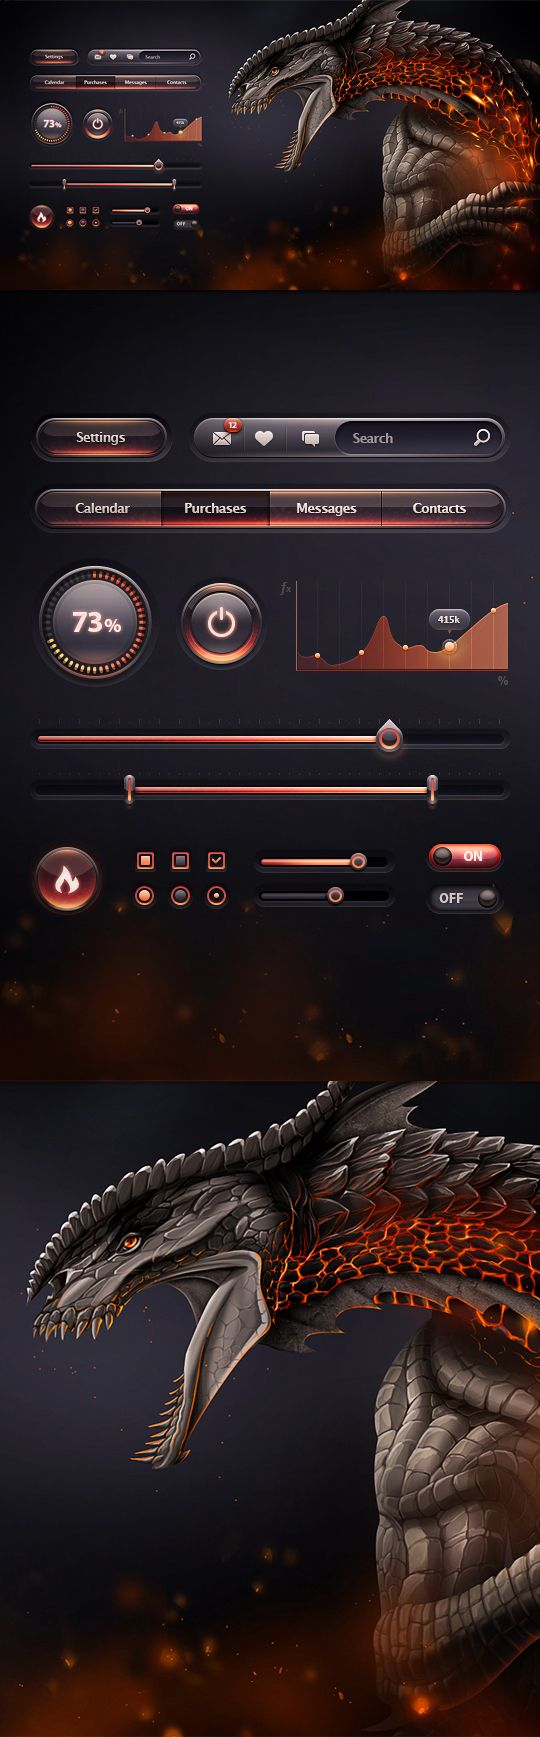 Portfolio 2012-2013 | UI Concepts by Mike , via Behance